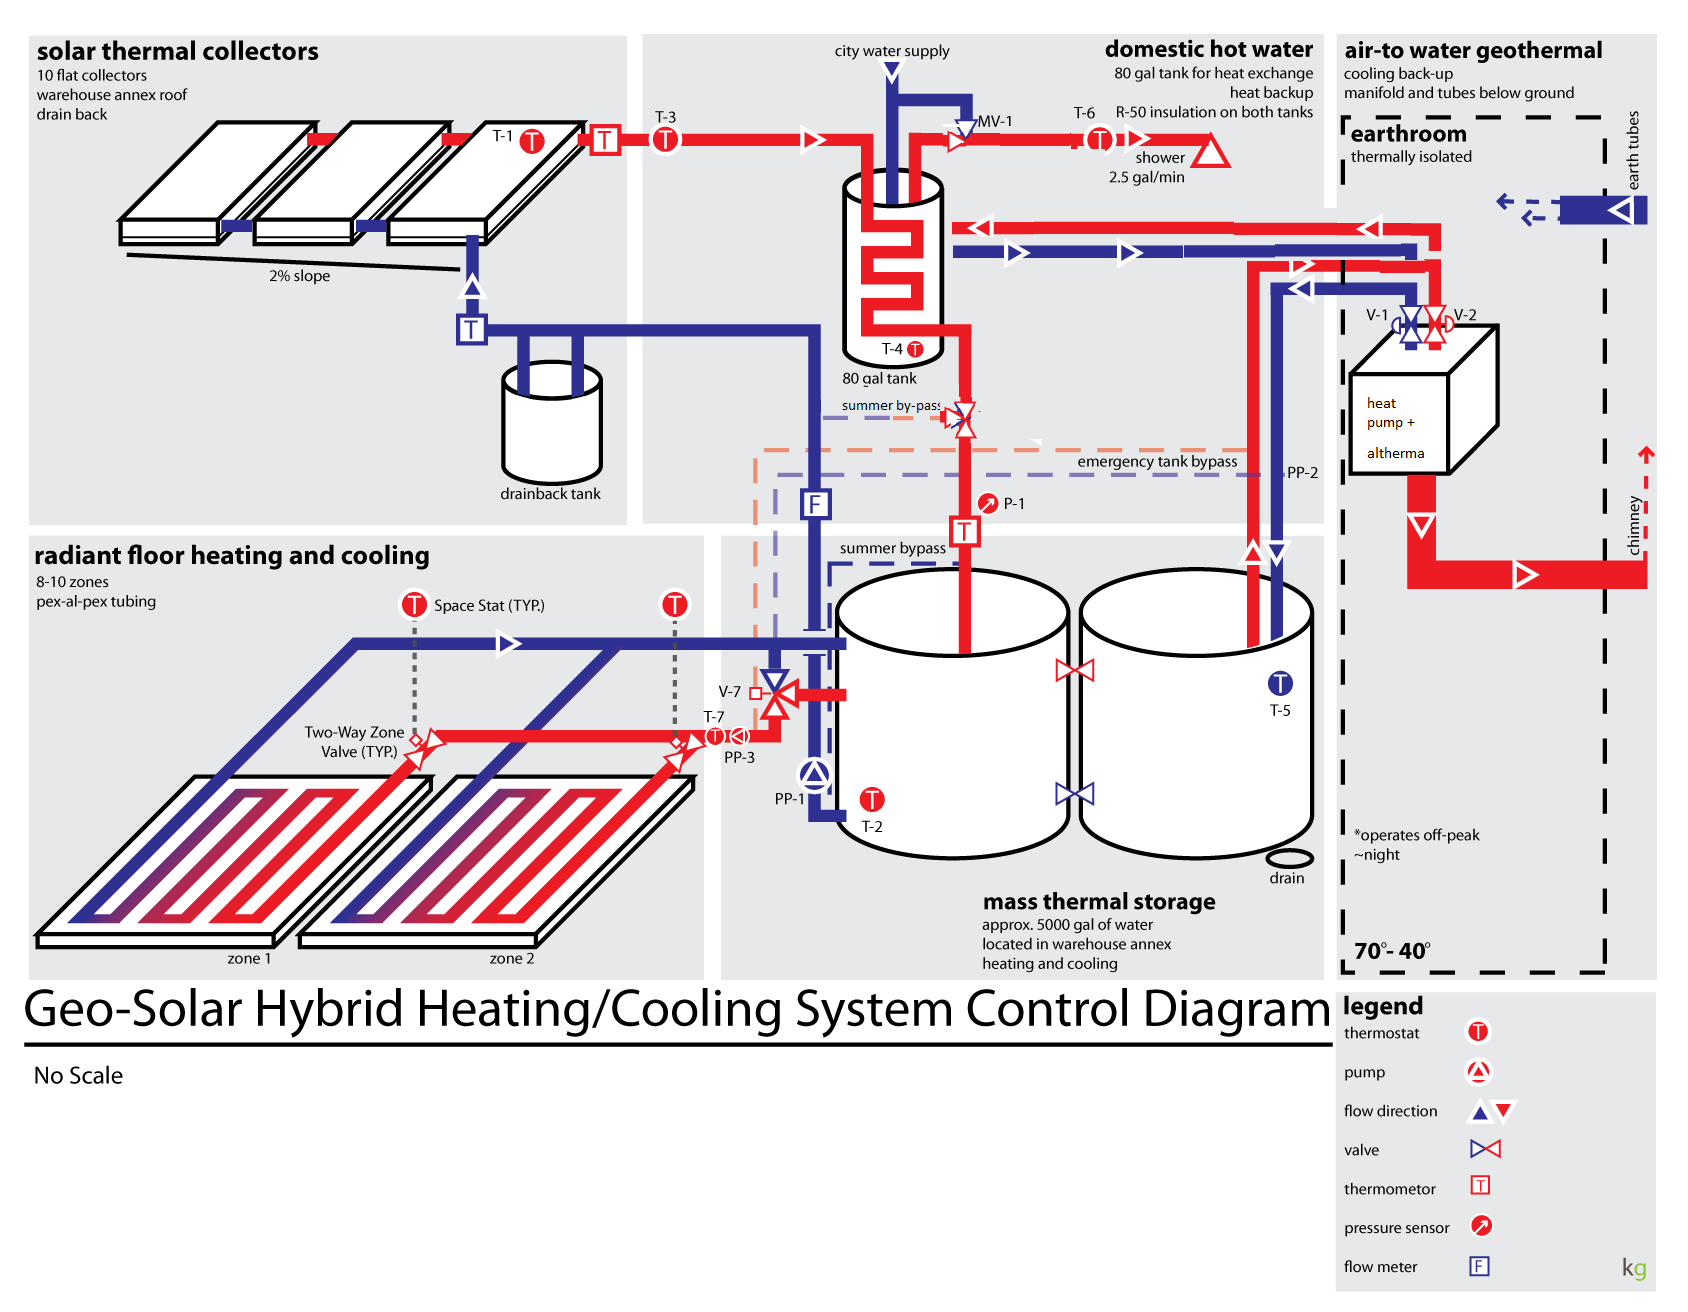 What is a good temp setting for radiant heat floor? 1/8 hose clamps